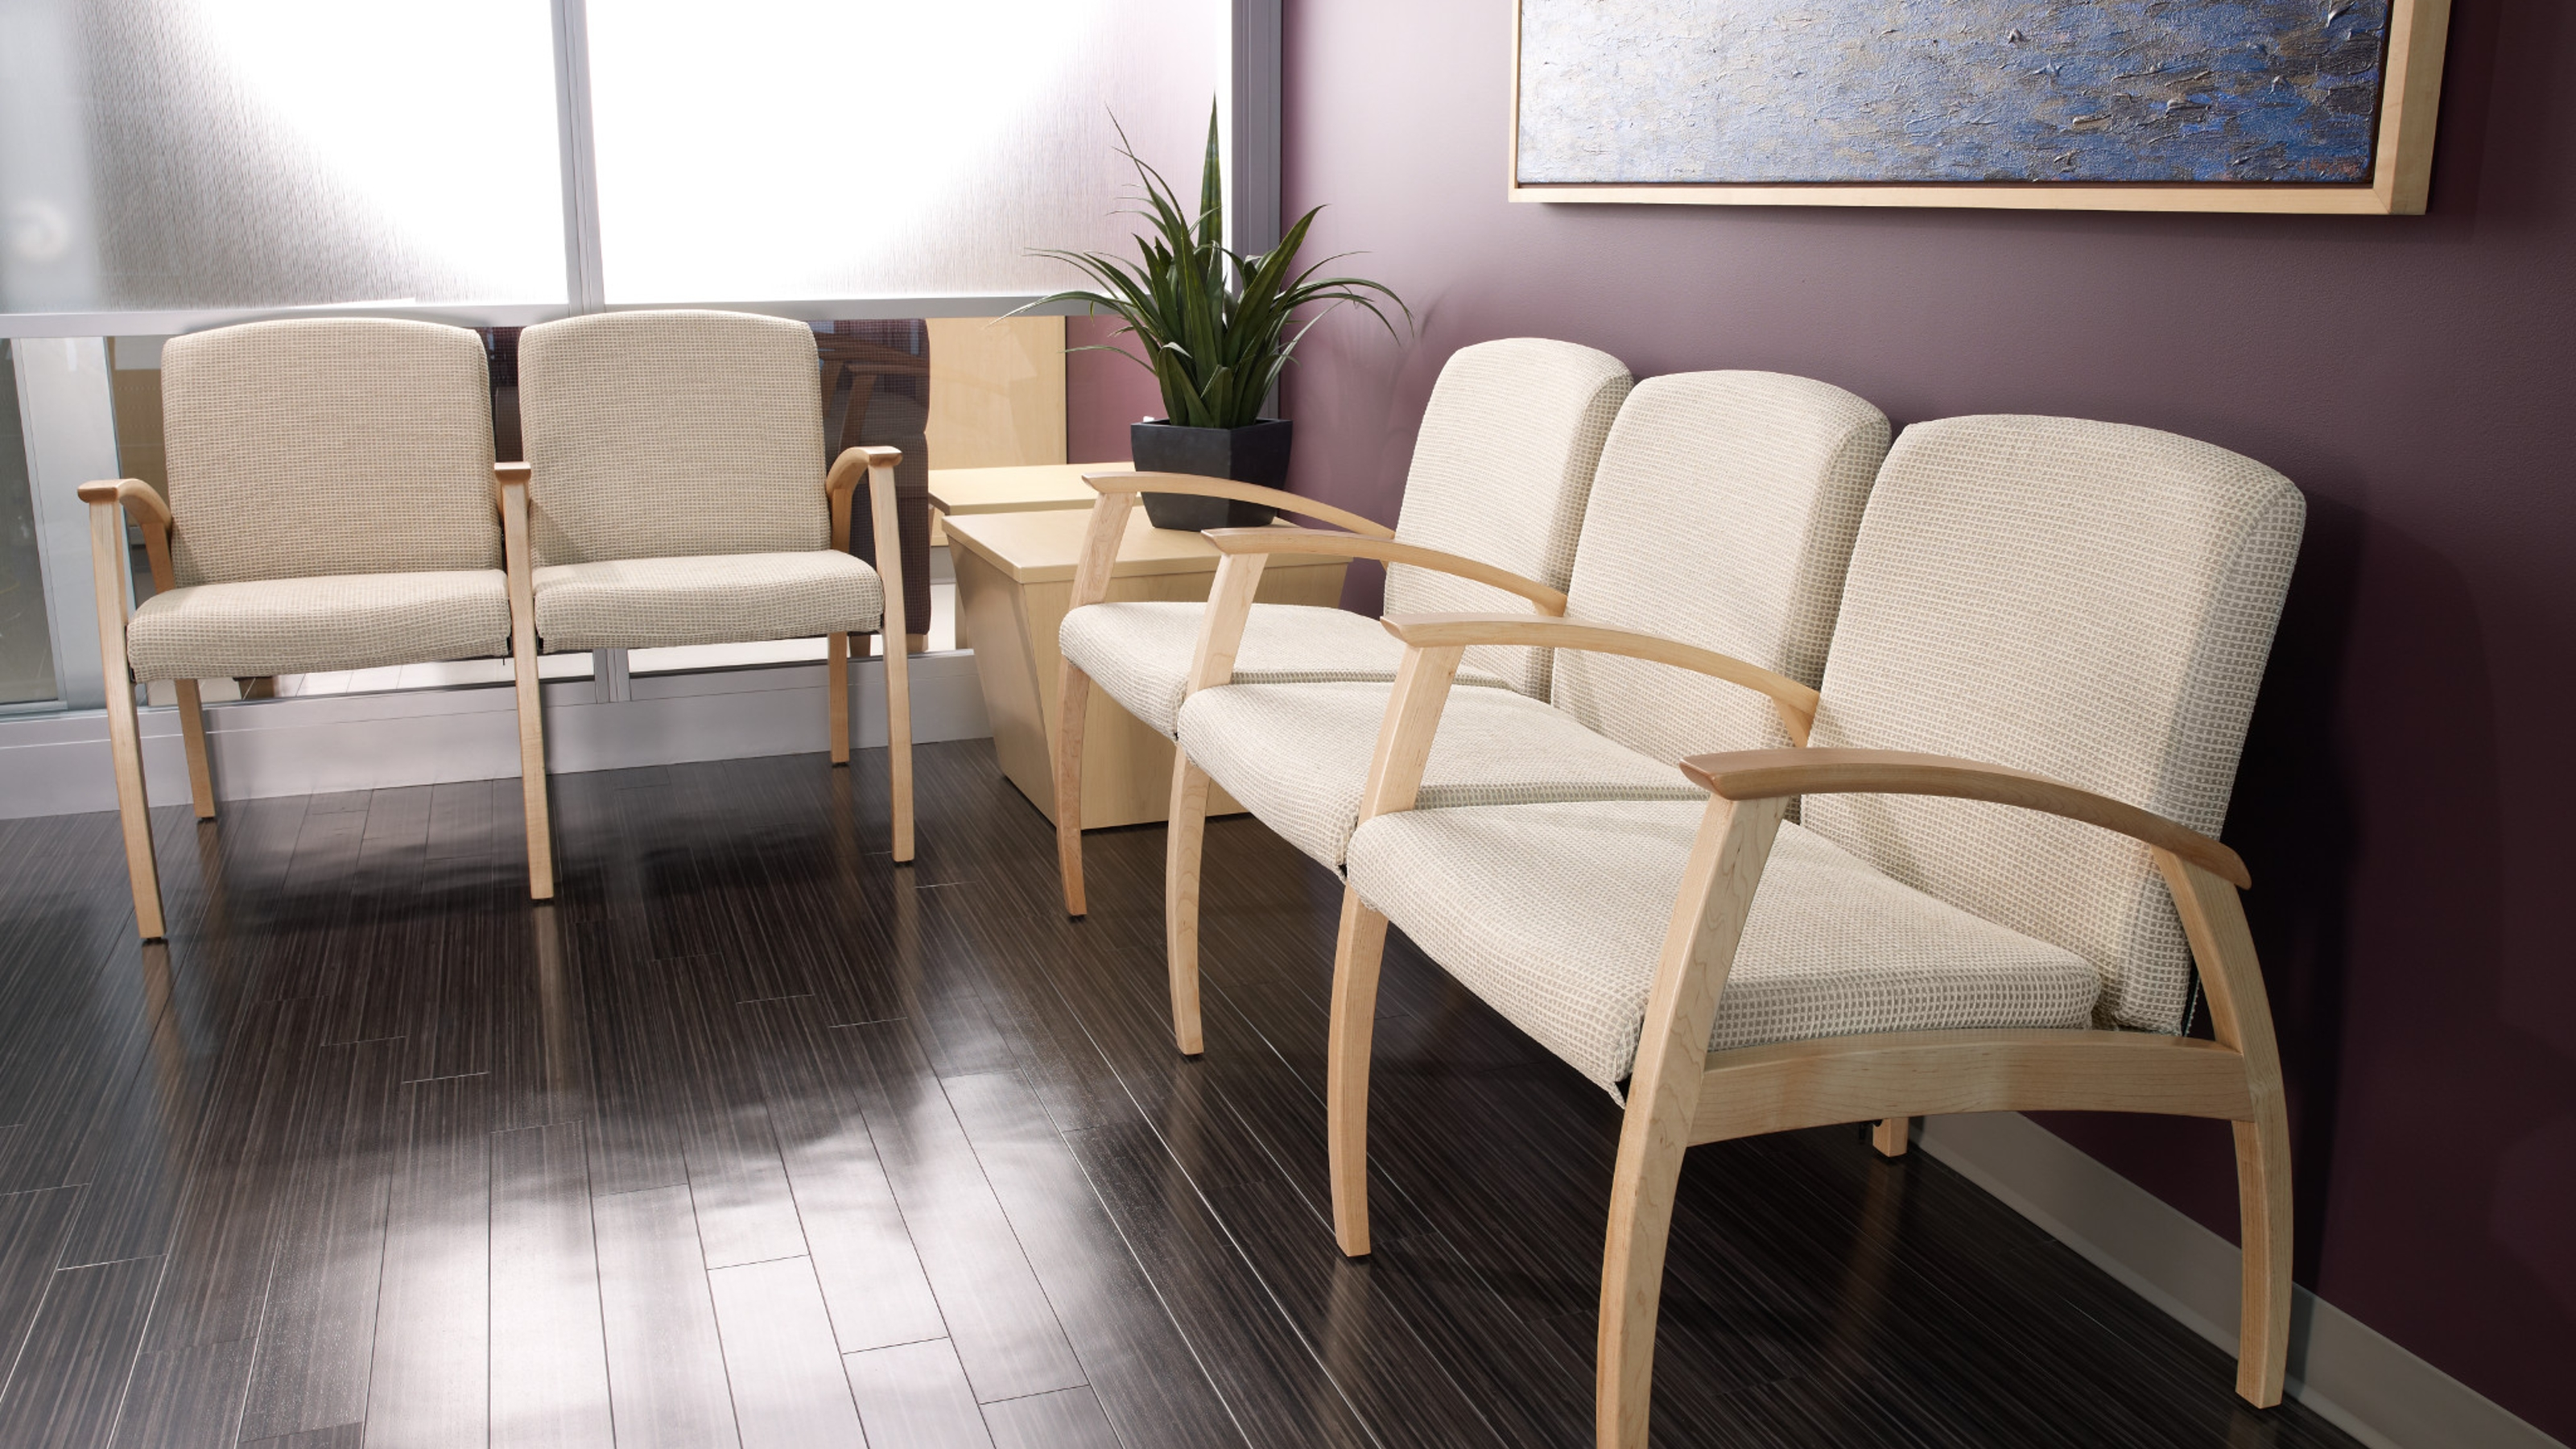 Mitra Healthcare Amp Lounge Seating Systems Steelcase